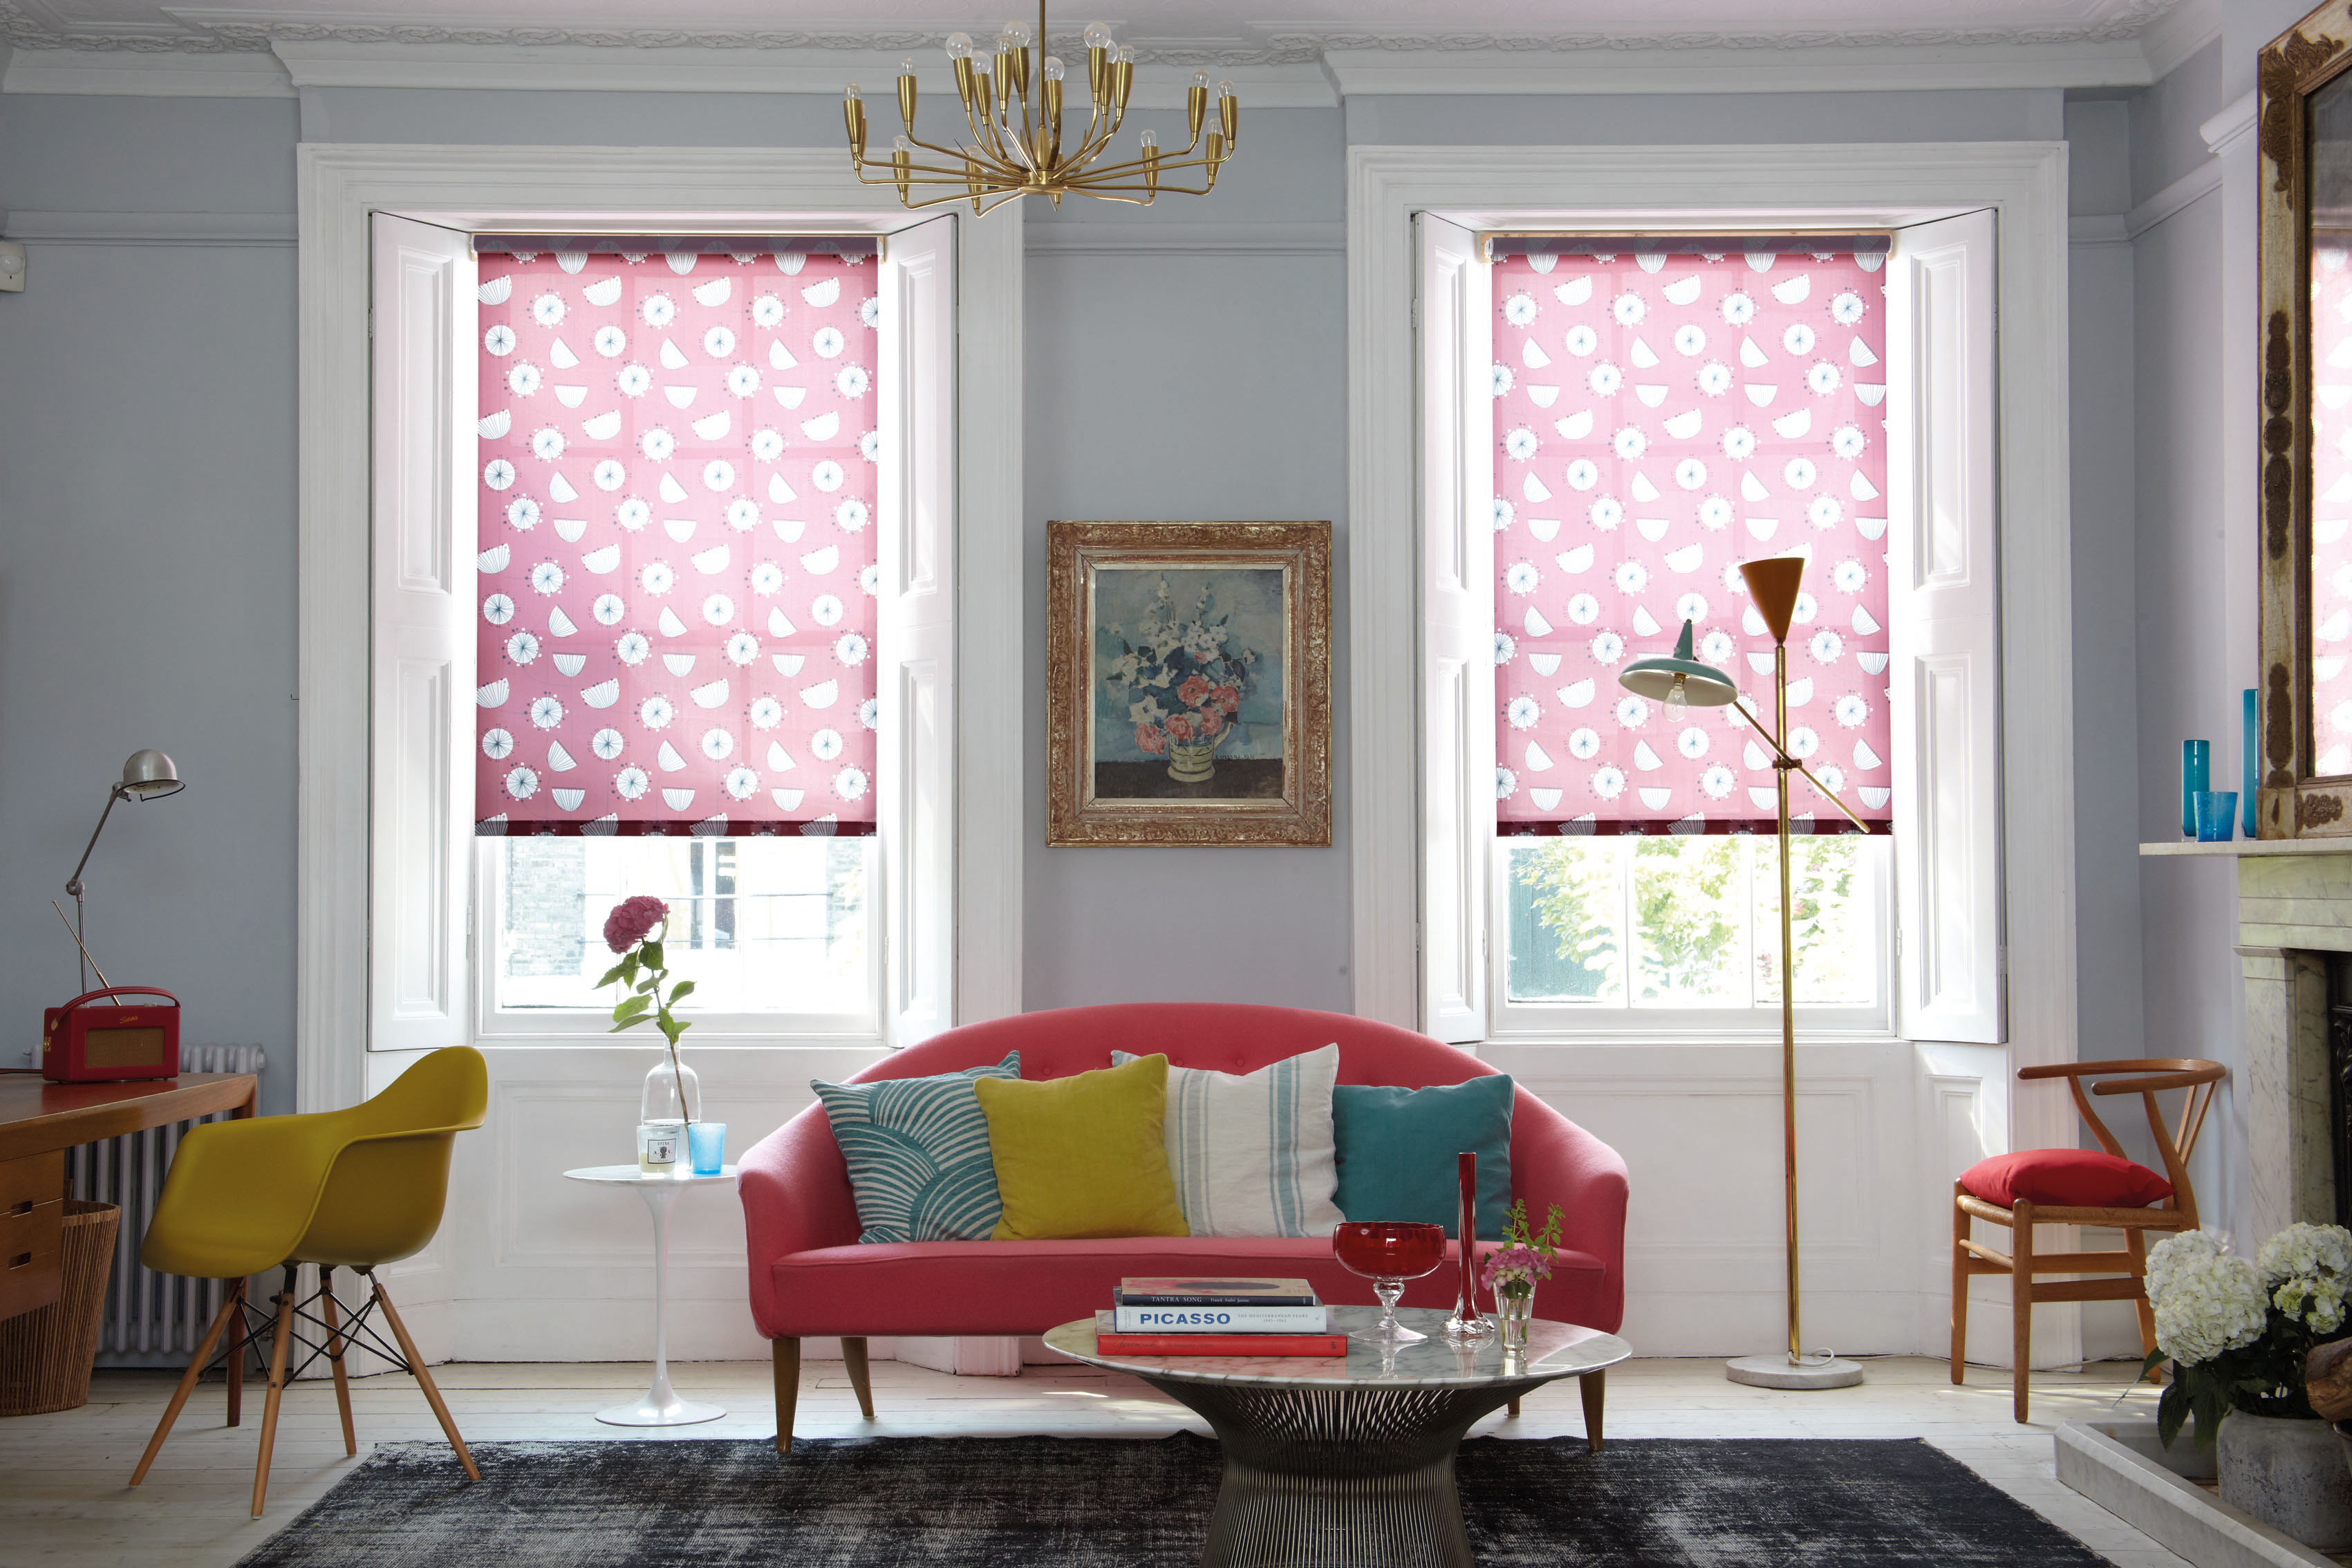 High Quality Patterned Blinds